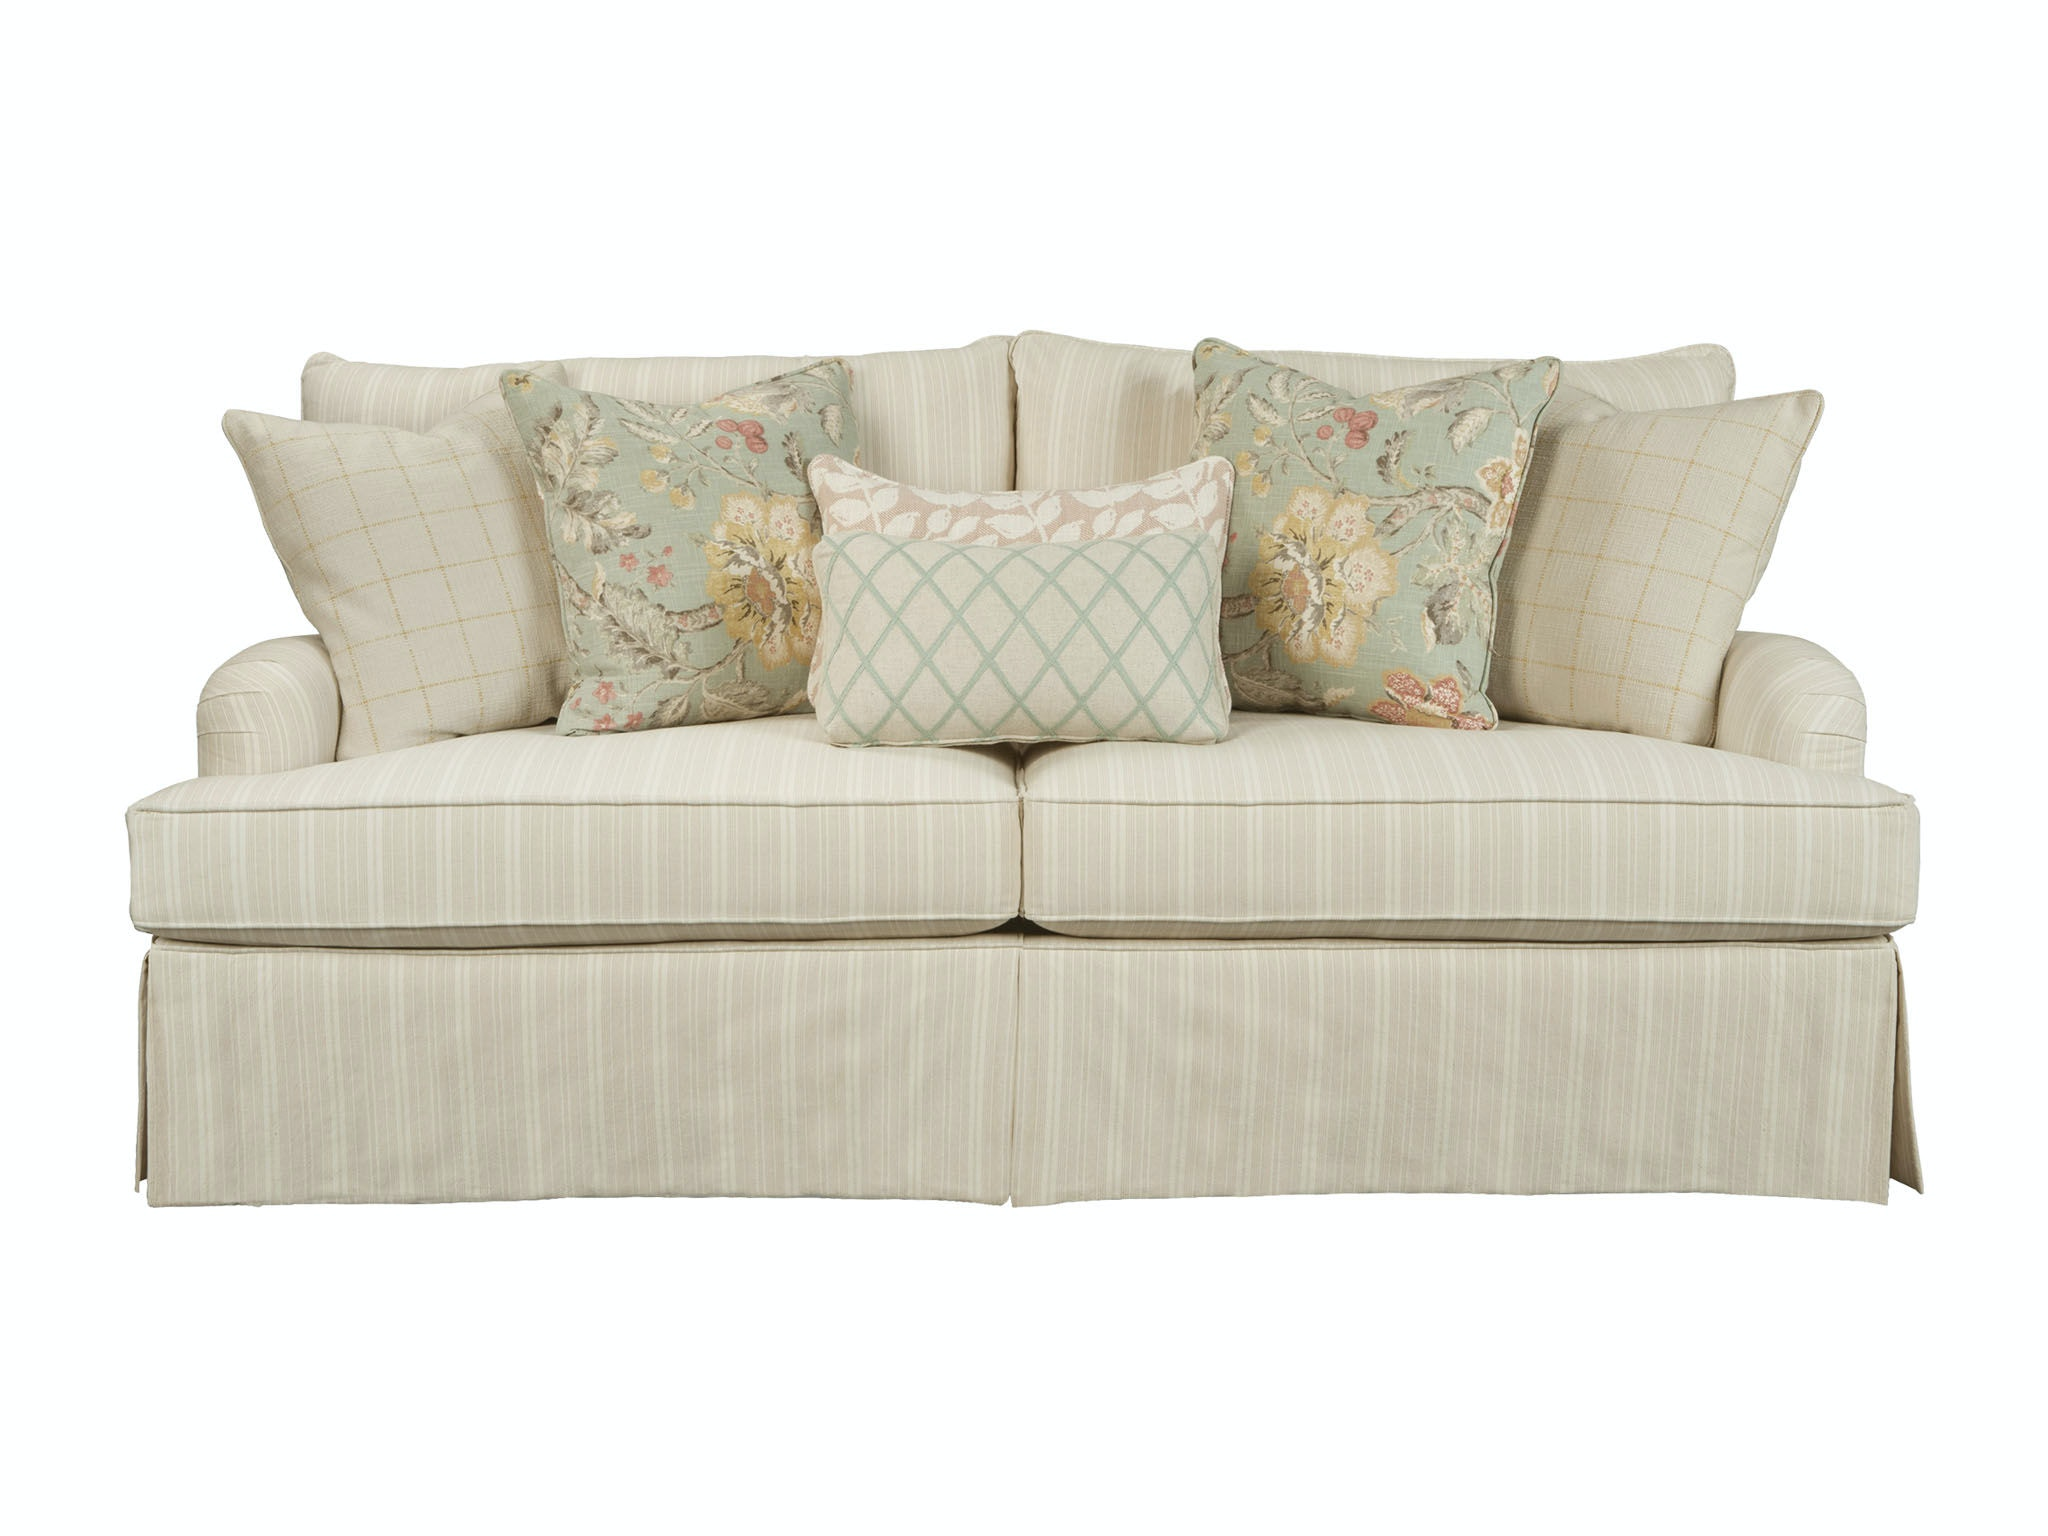 Paula Deen By Craftmaster Sofa P973650BD